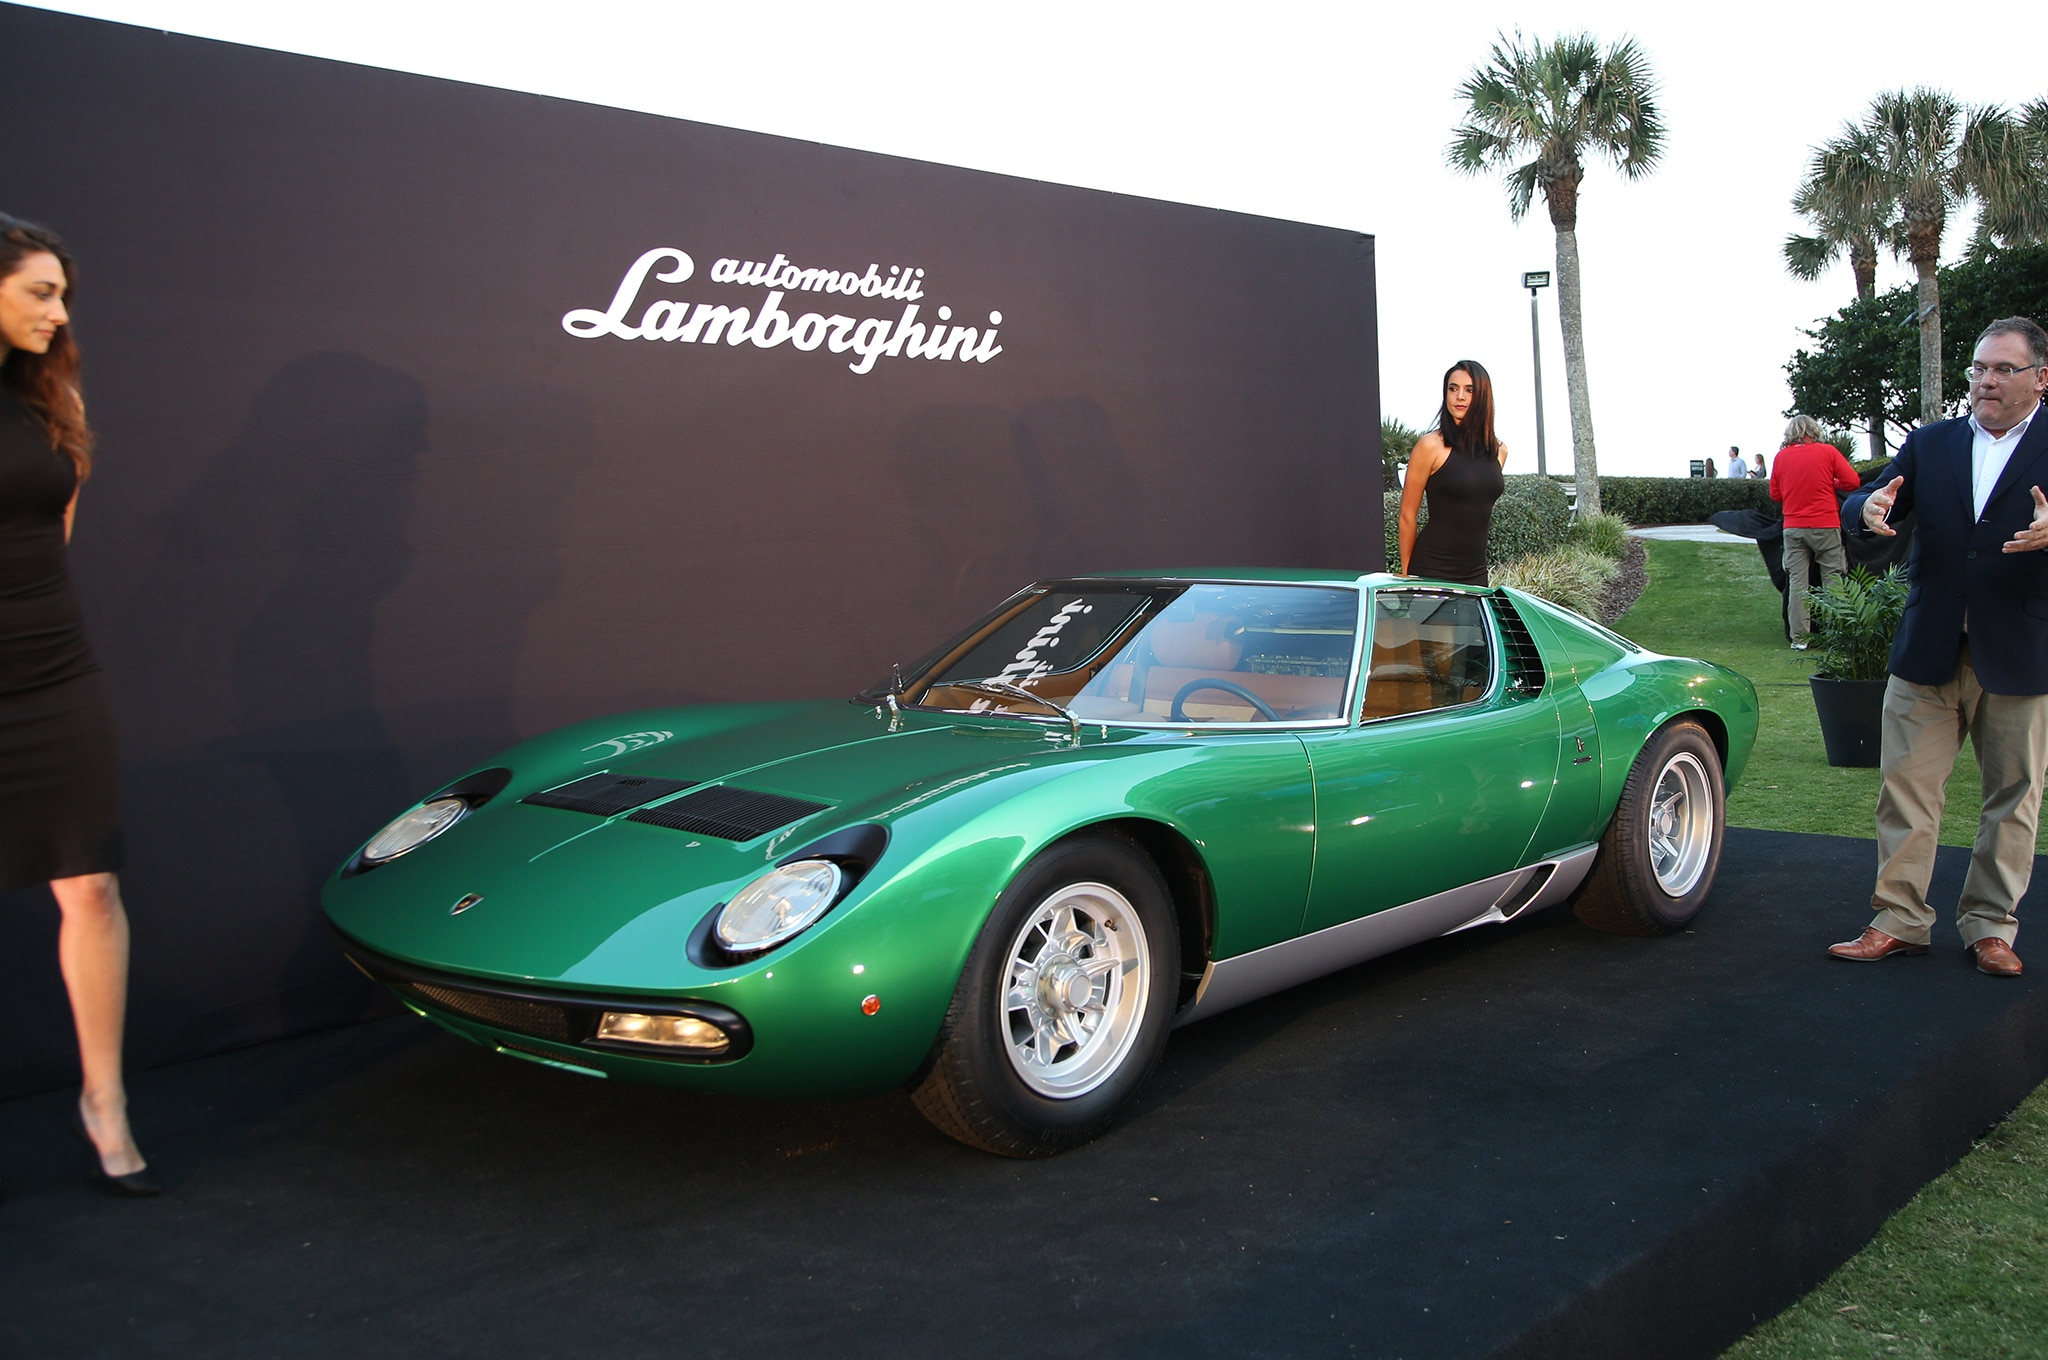 Here S What The New Lamborghini Miura Should Look Like